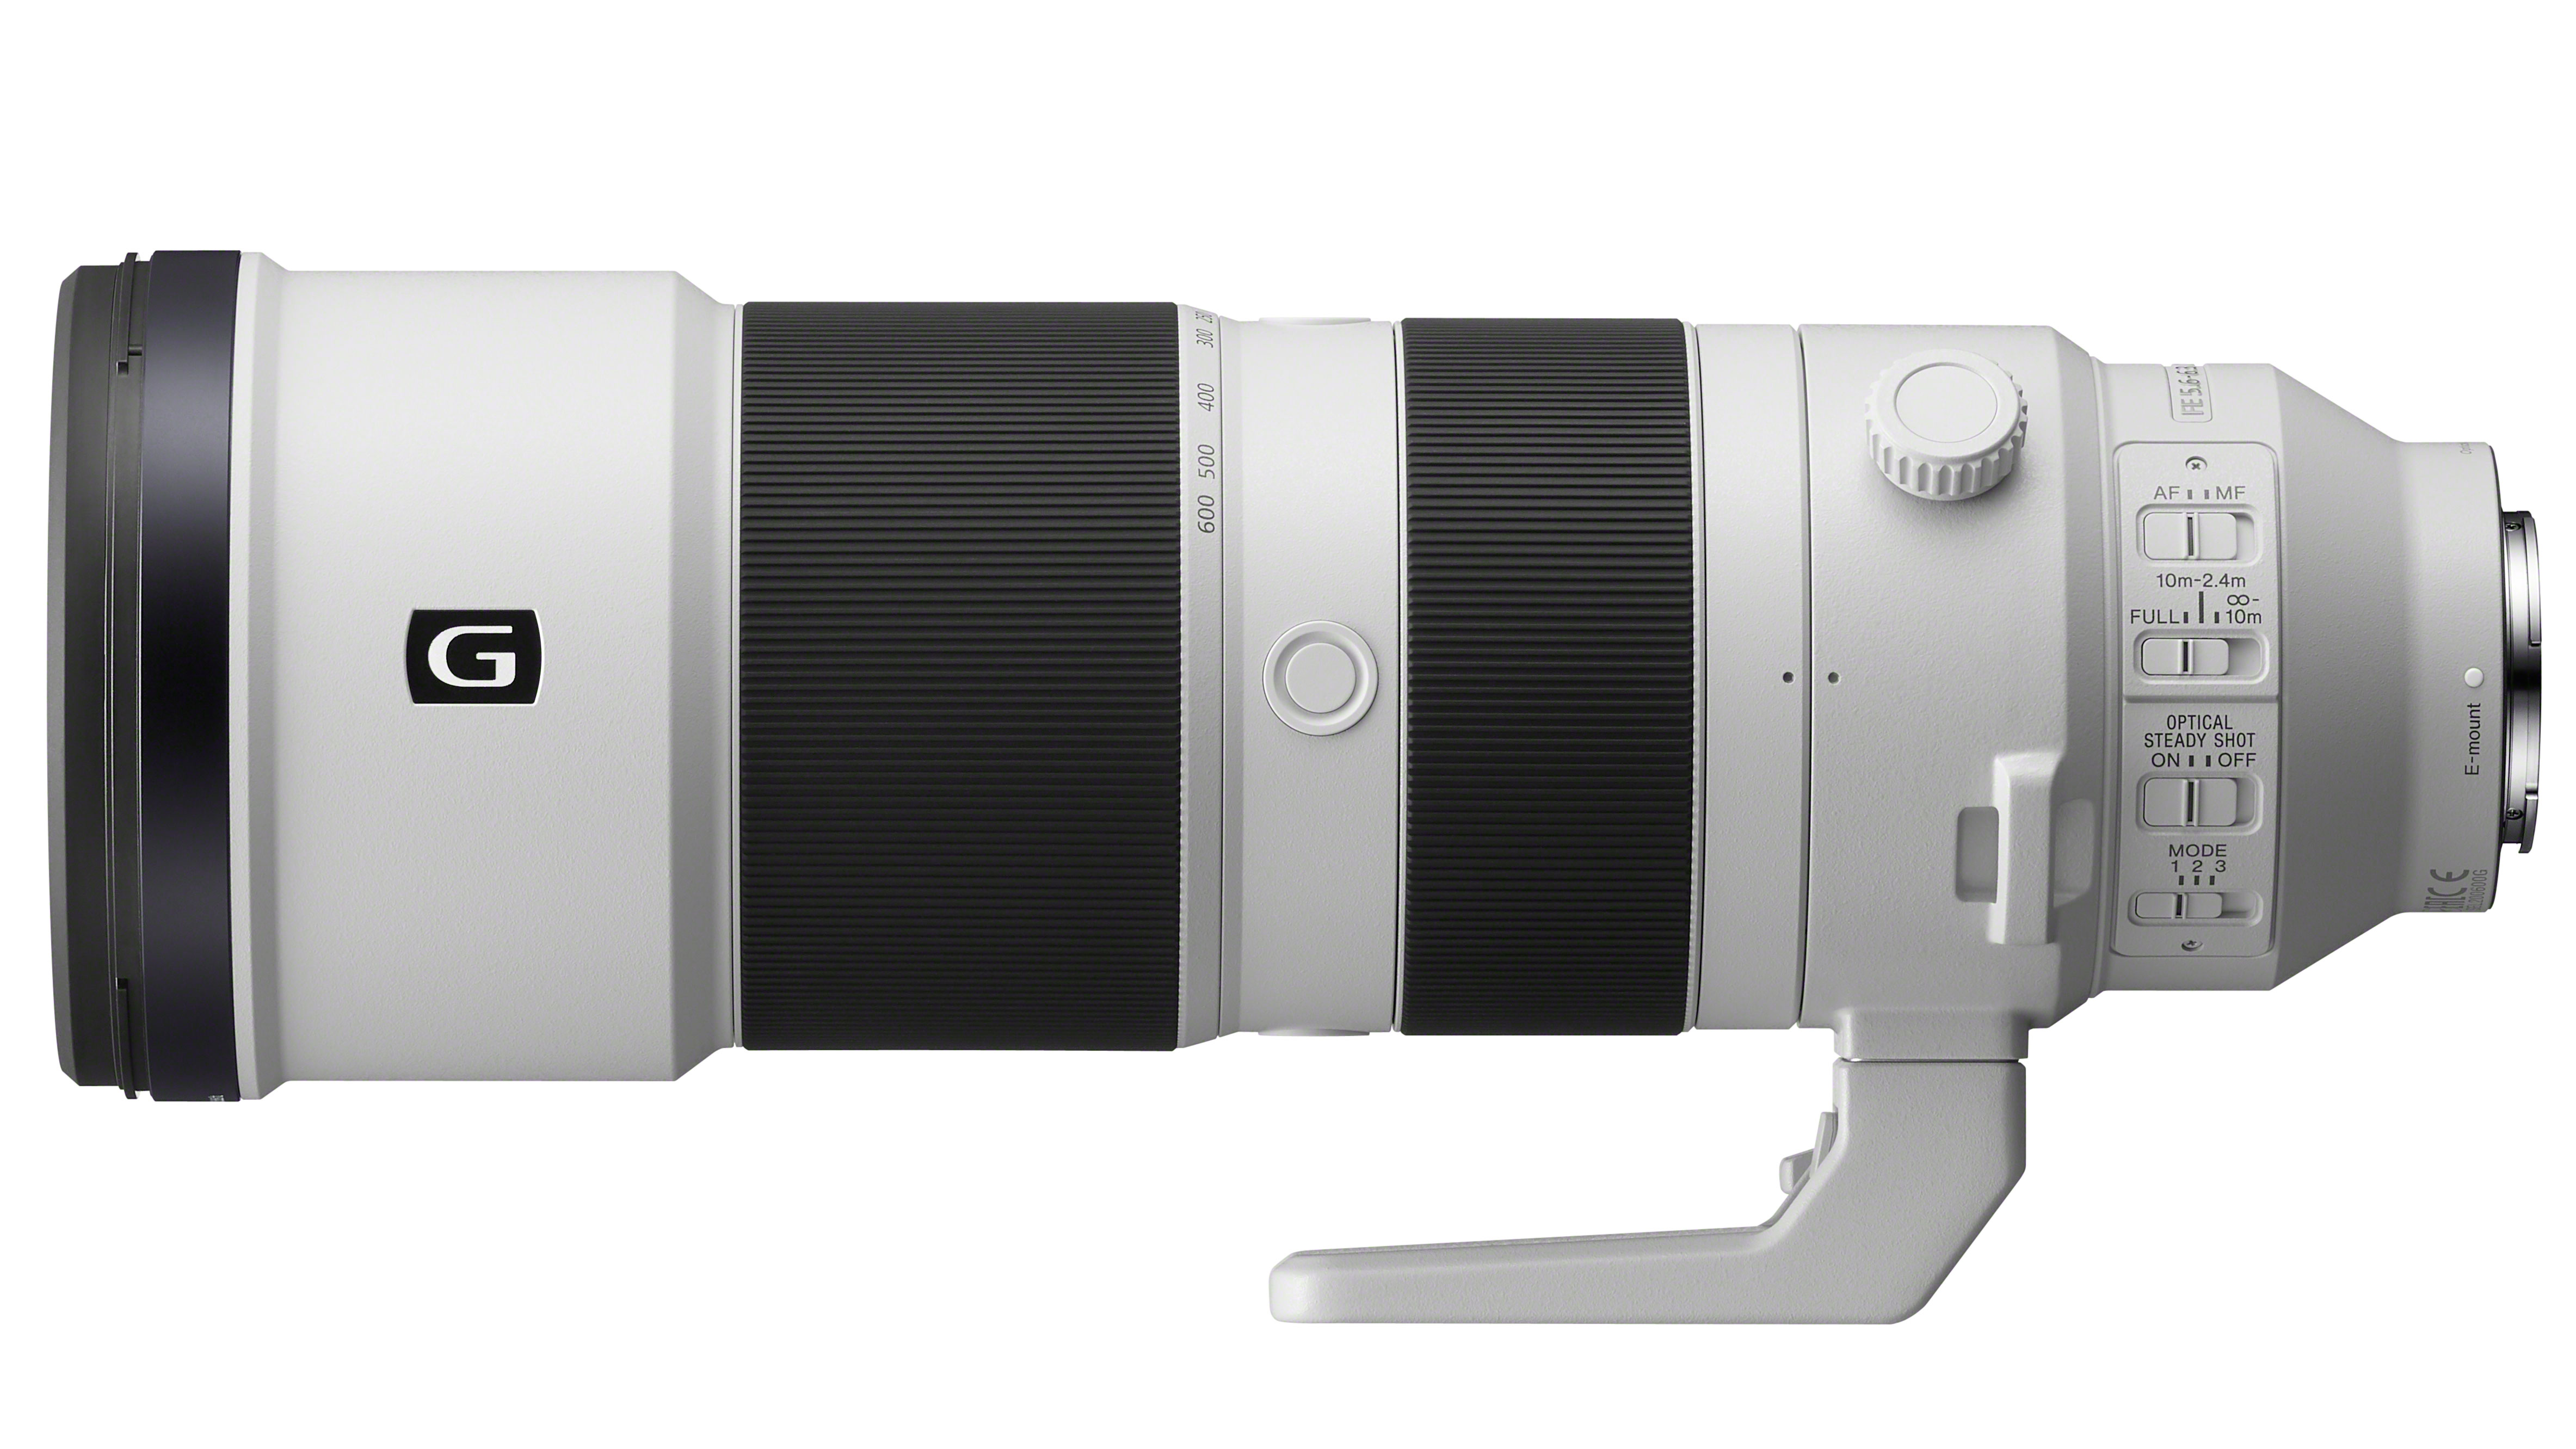 Sony FE 600mm F4 GM OSS officially unveiled, boosting Sony's pro lens lineup | Digital Camera World